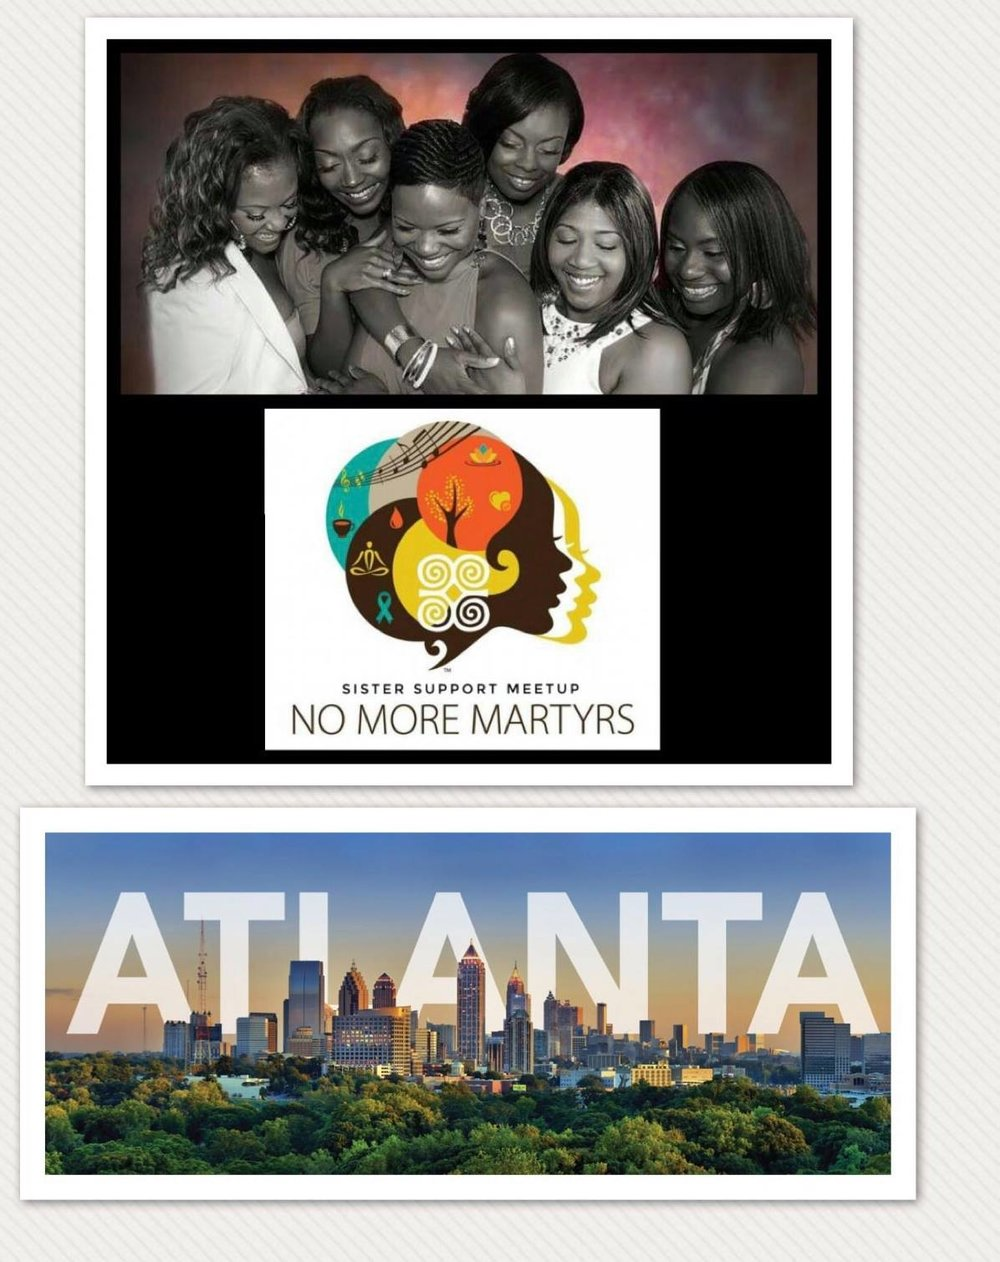 Atlanta, GA and Birmingham, AL - No More Martyrs launched their Sister Support Meetups in Atlanta, Georgia on July 16, 2018 and held their monthly meetup in Birmingham, Alabama on July 19th